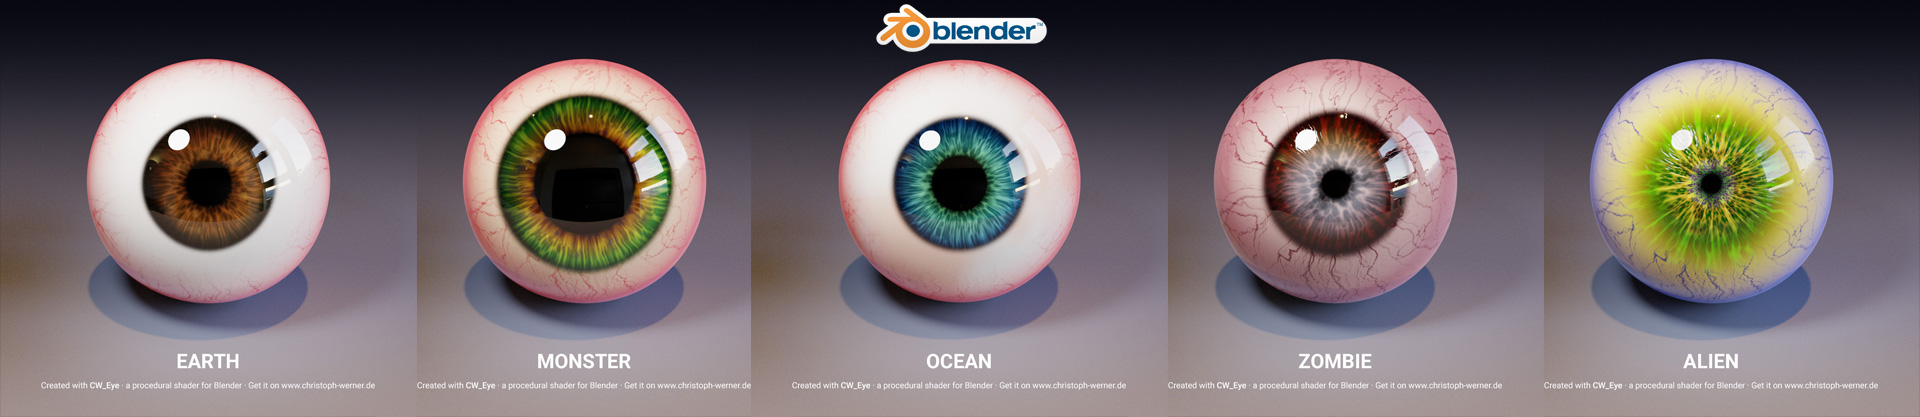 CW Eye – Procedural Eye Material for Blender